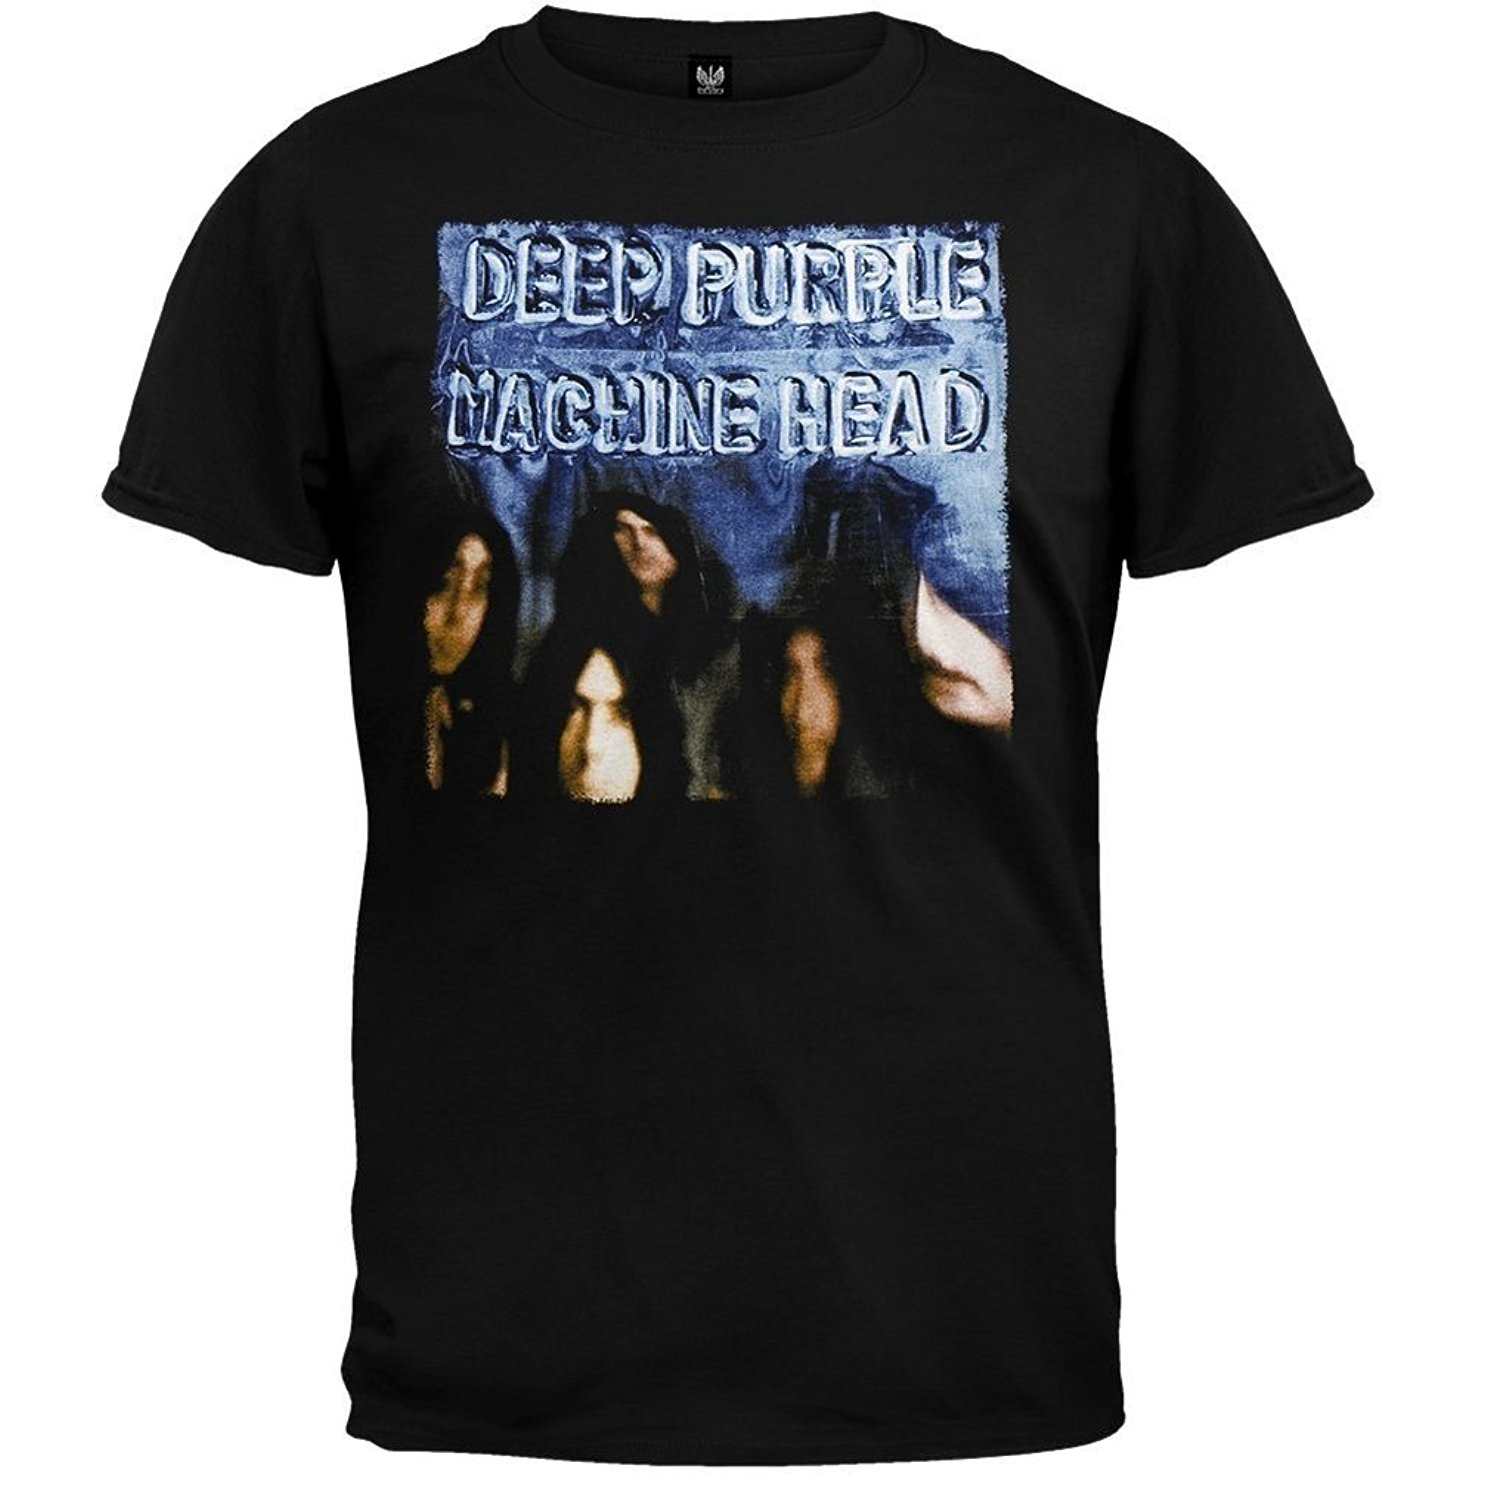 New Deep Purple Phoenix Riser Rock Legend Mens Black T-shirt Size S To 3XL T Shirts Casual Brand Clothing Cotton Top Tee